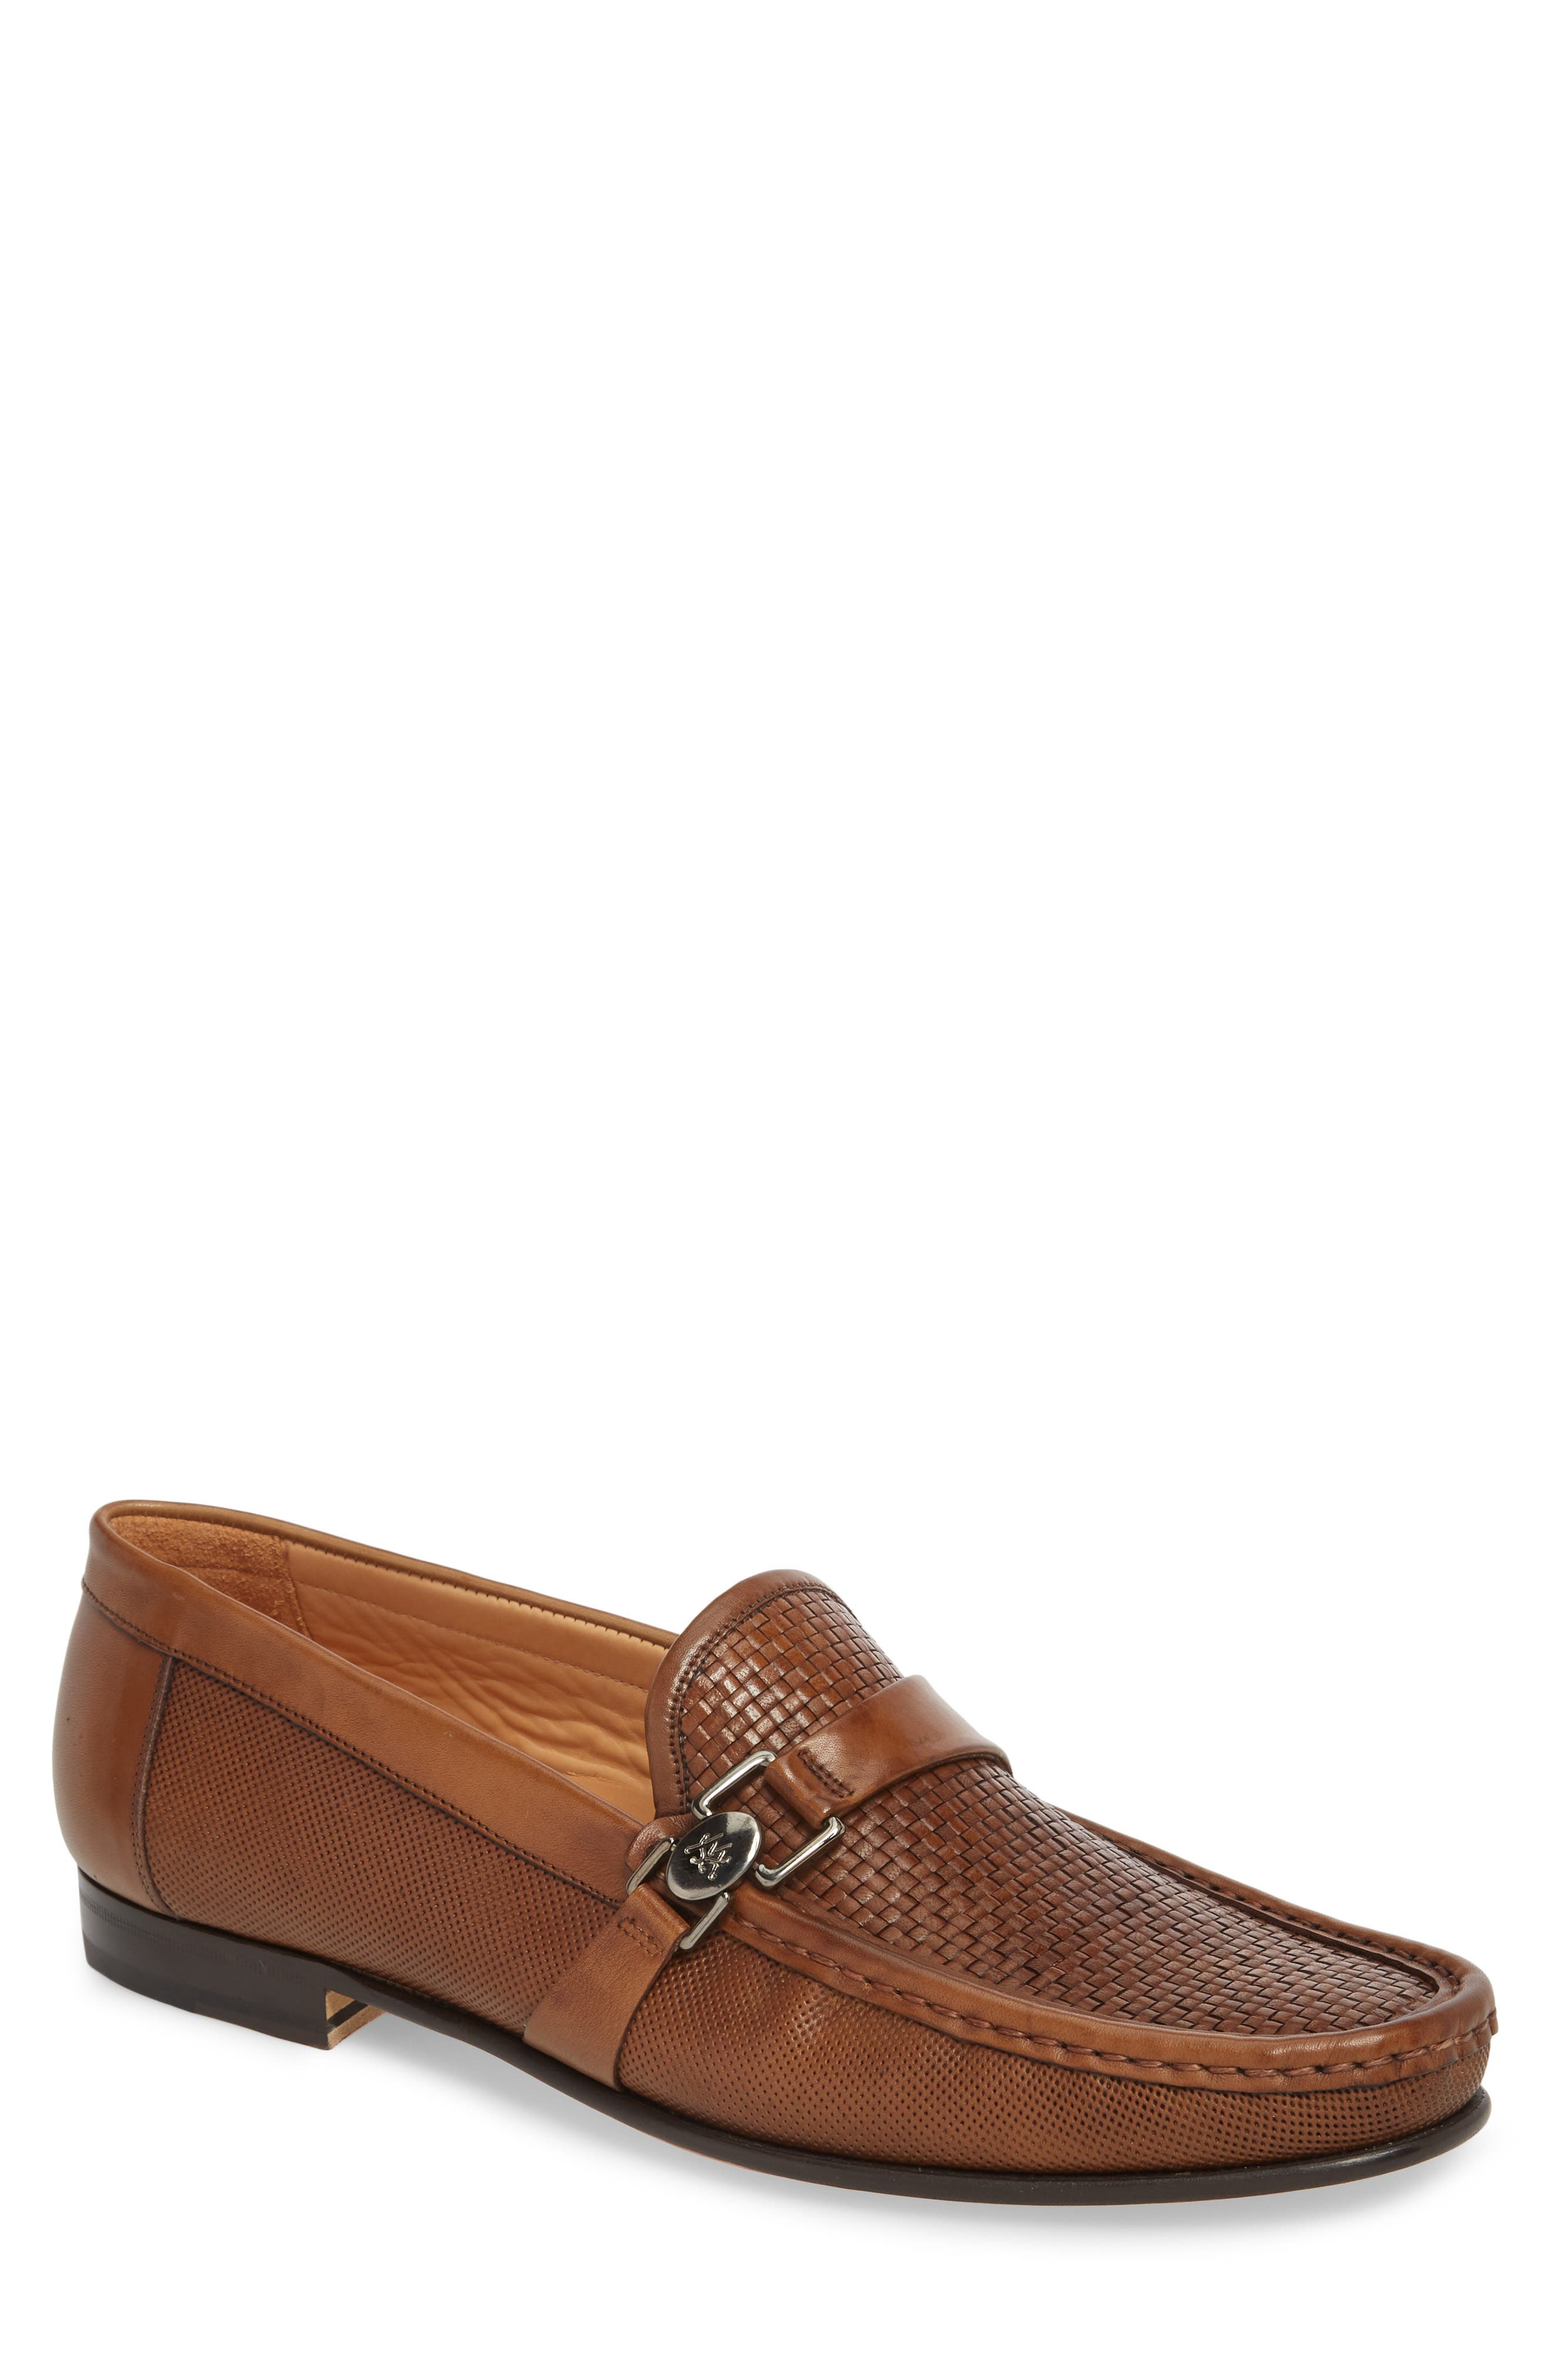 Horatio Woven Moc Toe Loafer,                         Main,                         color, COGNAC LEATHER